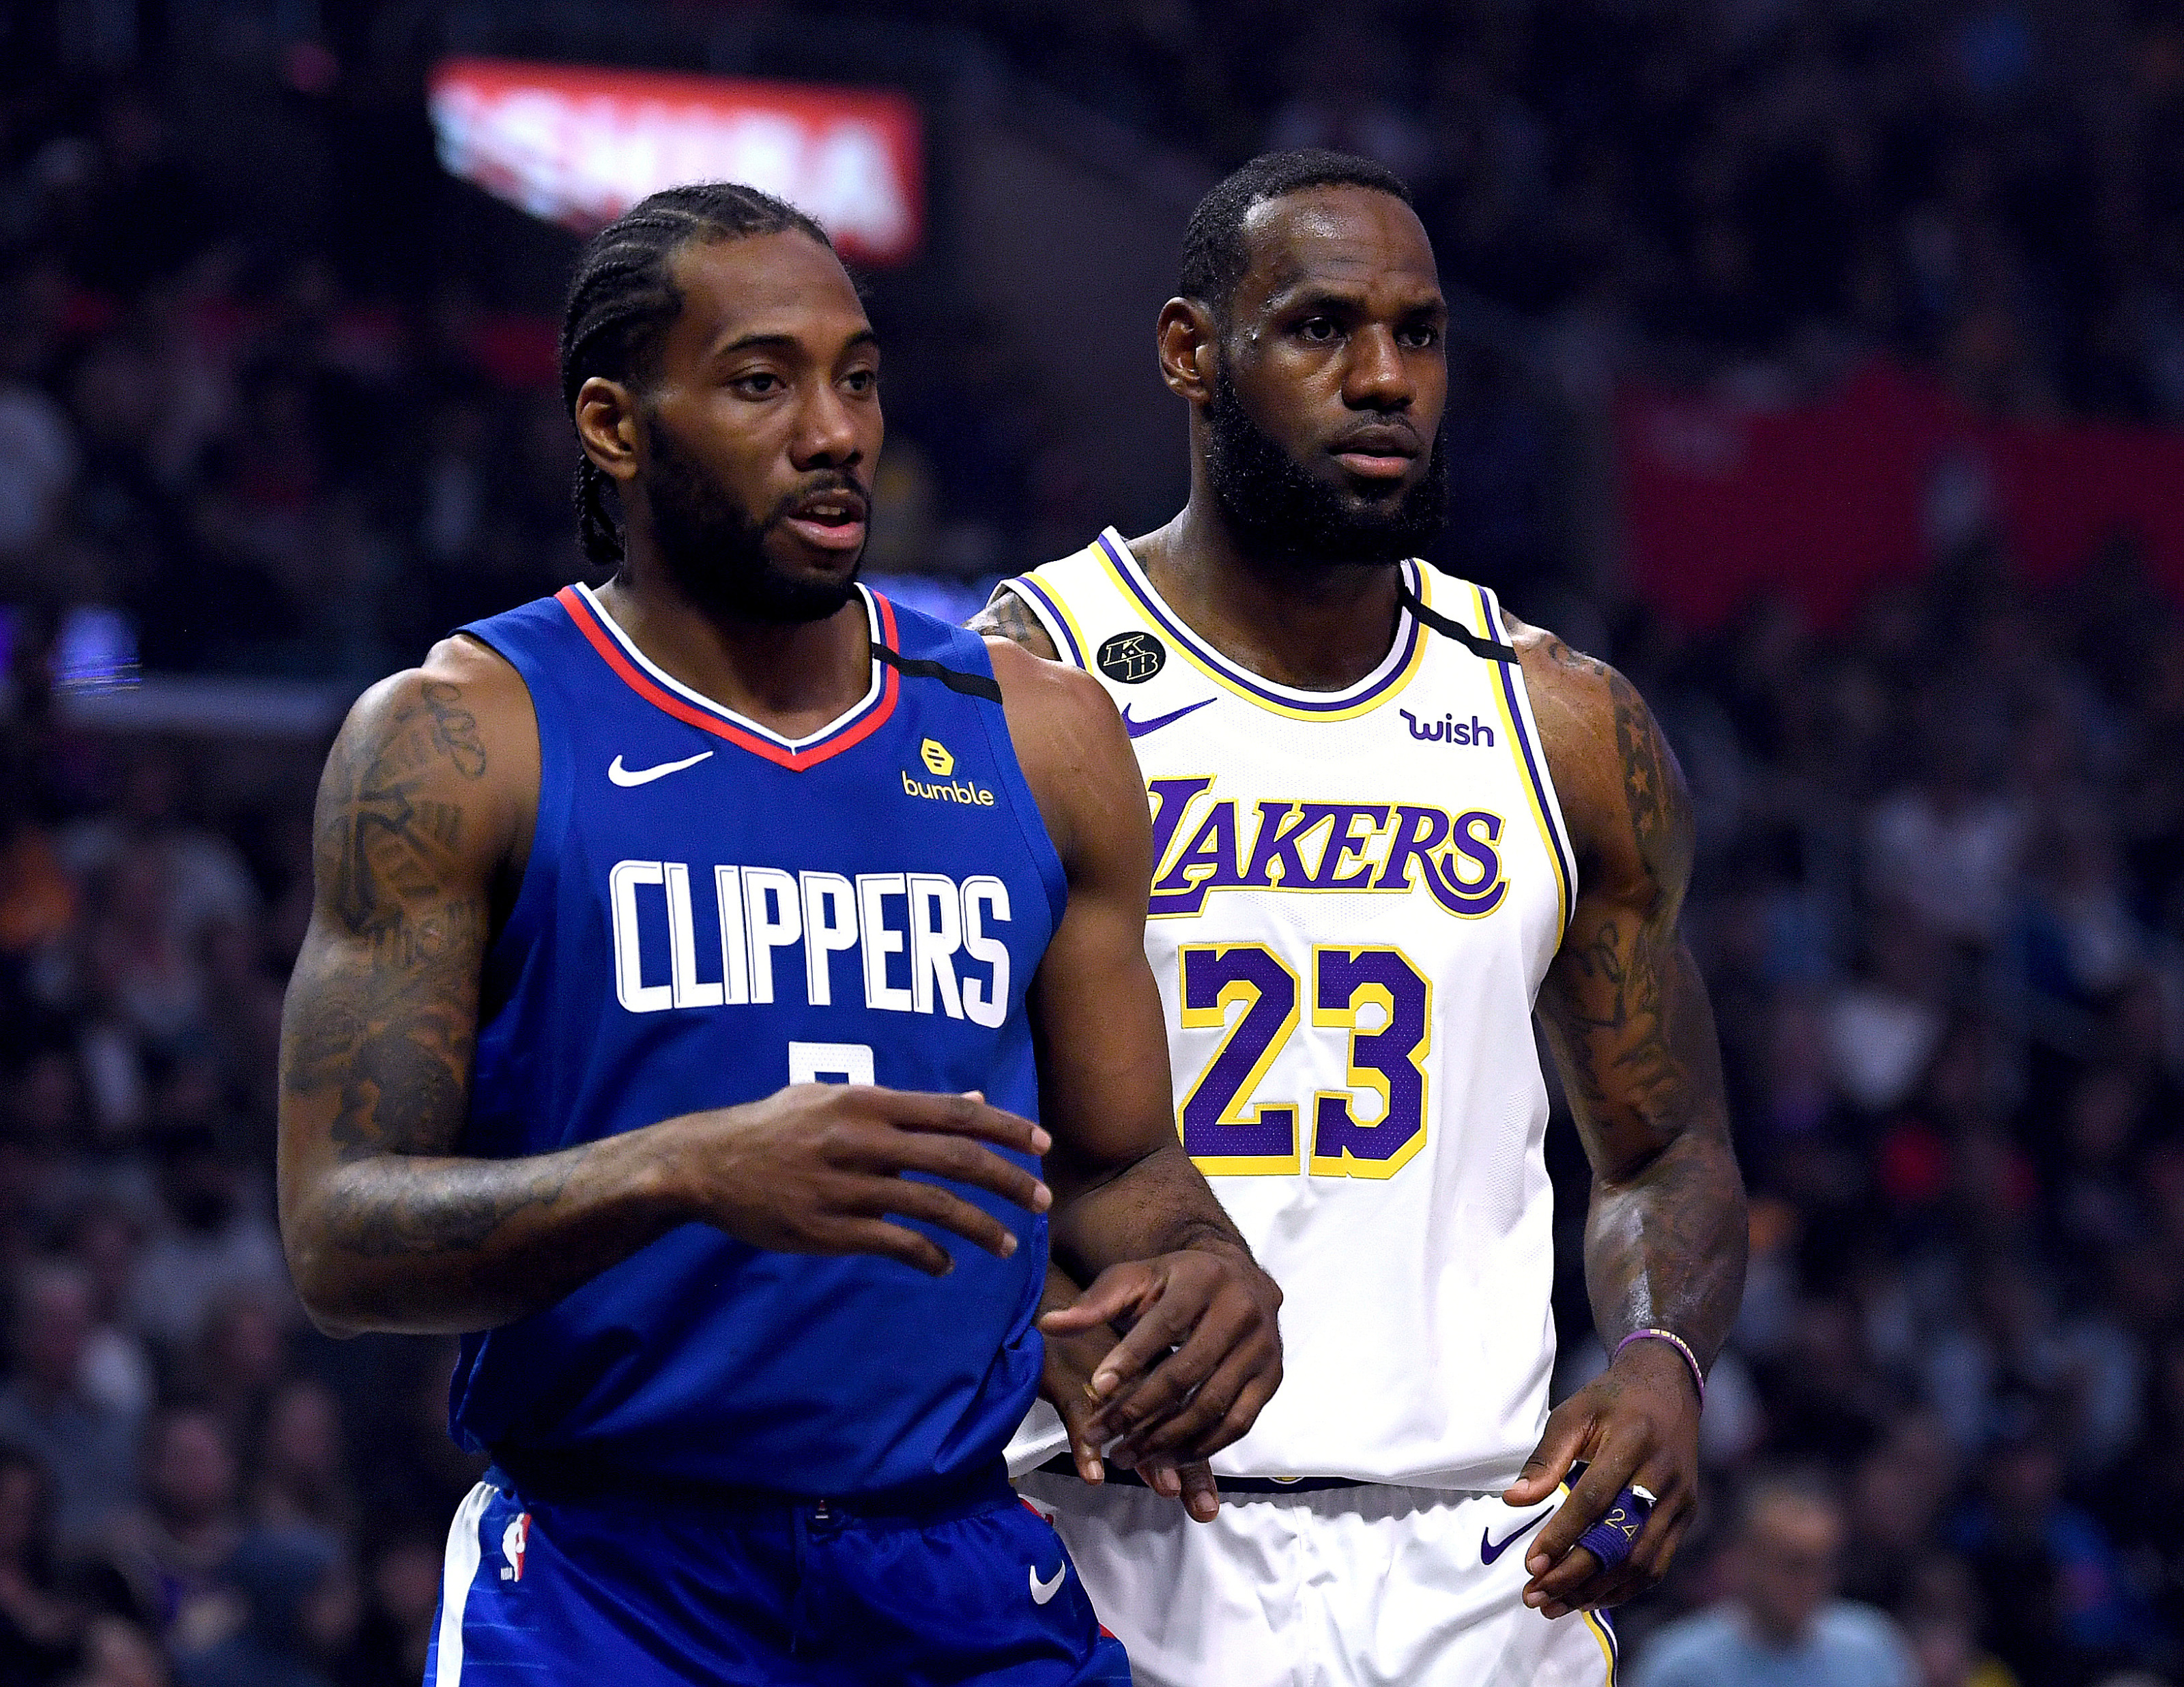 The Whiteboard Nba Matchups We Want On Opening Night And Christmas Day